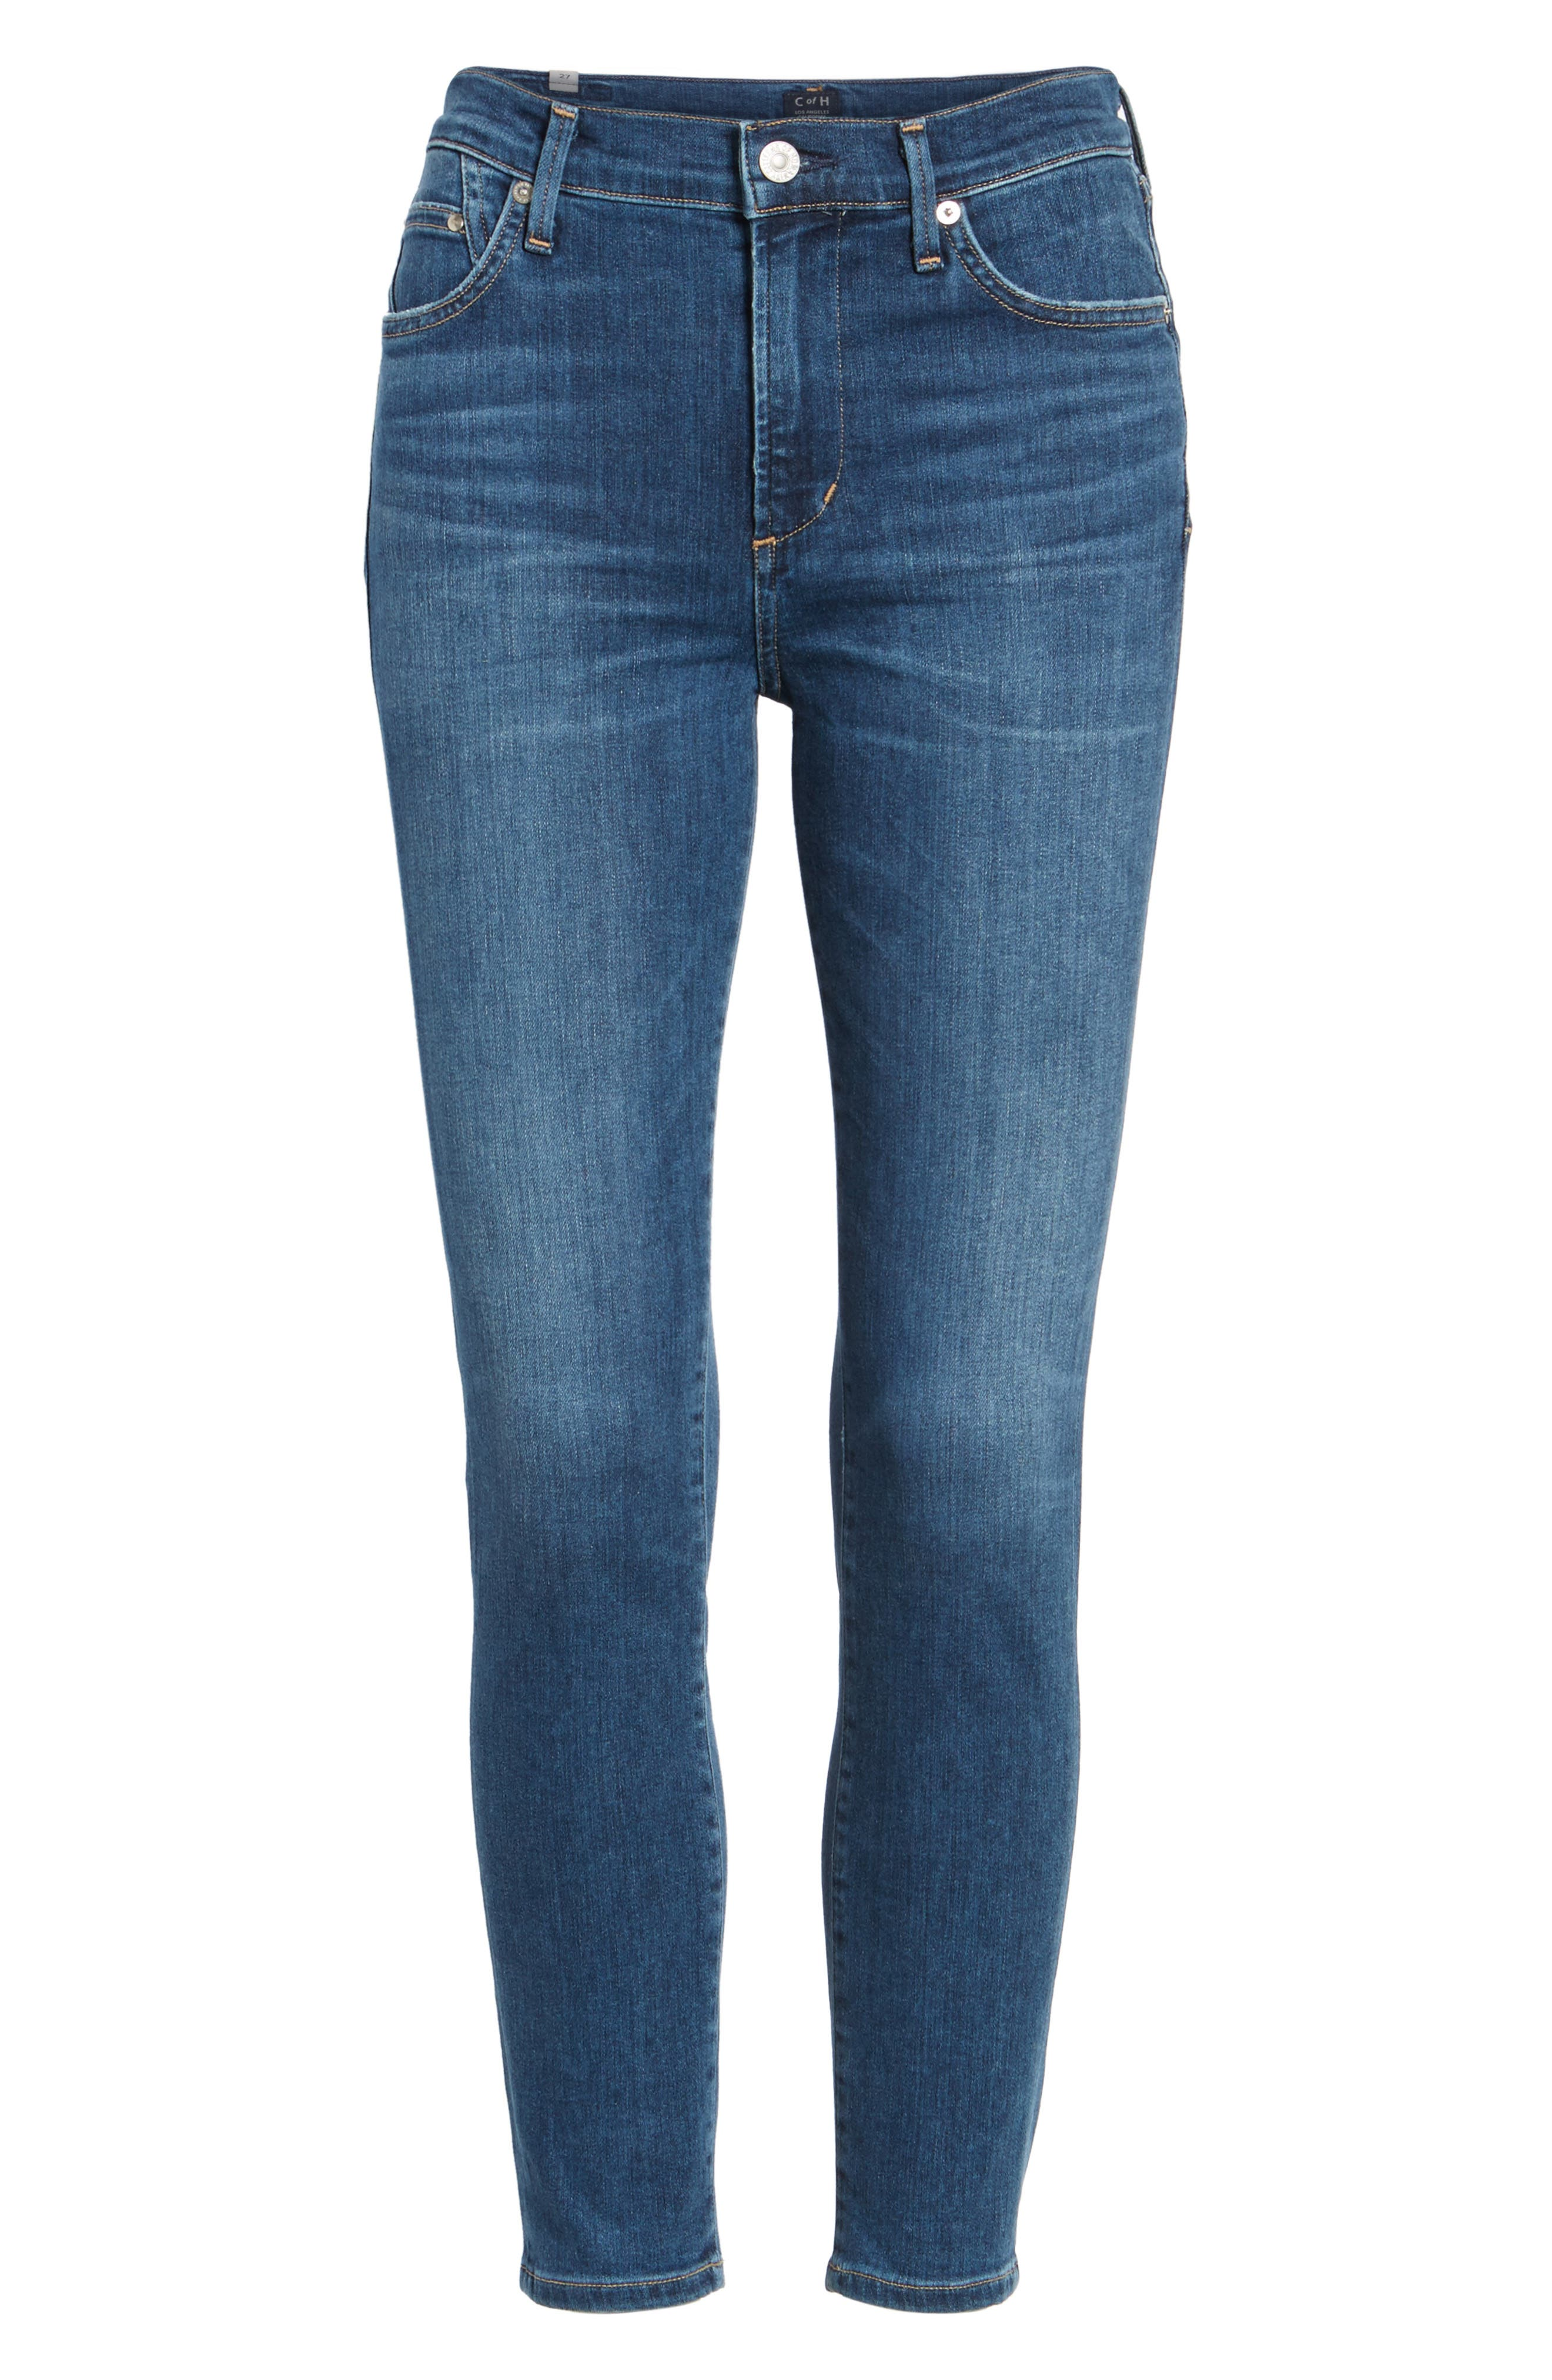 Rocket High Waist Crop Skinny Jeans,                             Alternate thumbnail 2, color,                             430